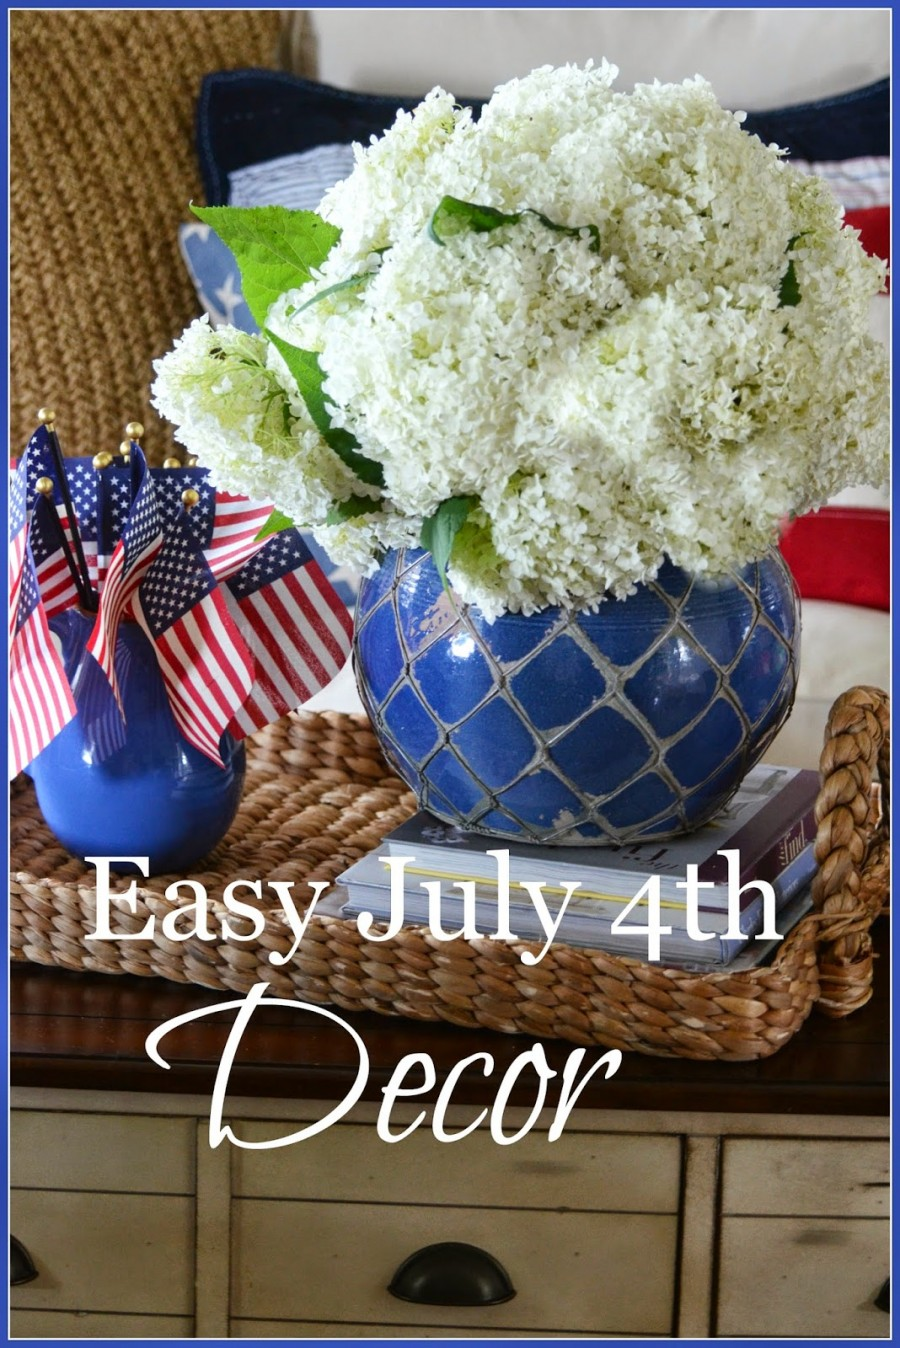 EASY JULY 4TH DECOR